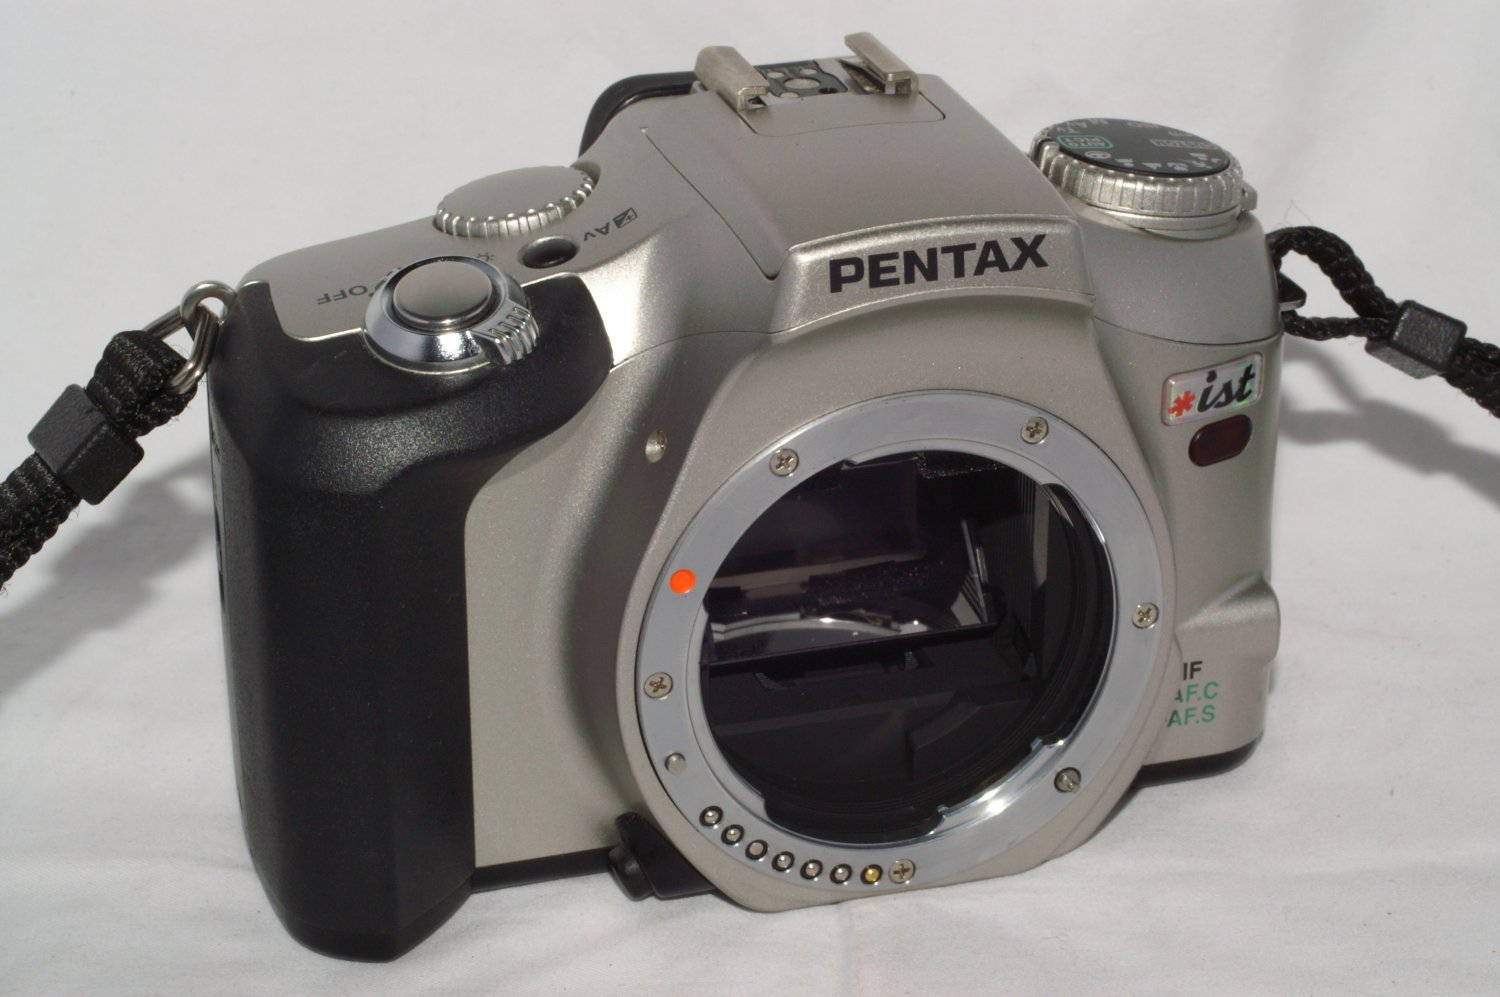 Pentax *ist  35mm film autofocus SLR camera